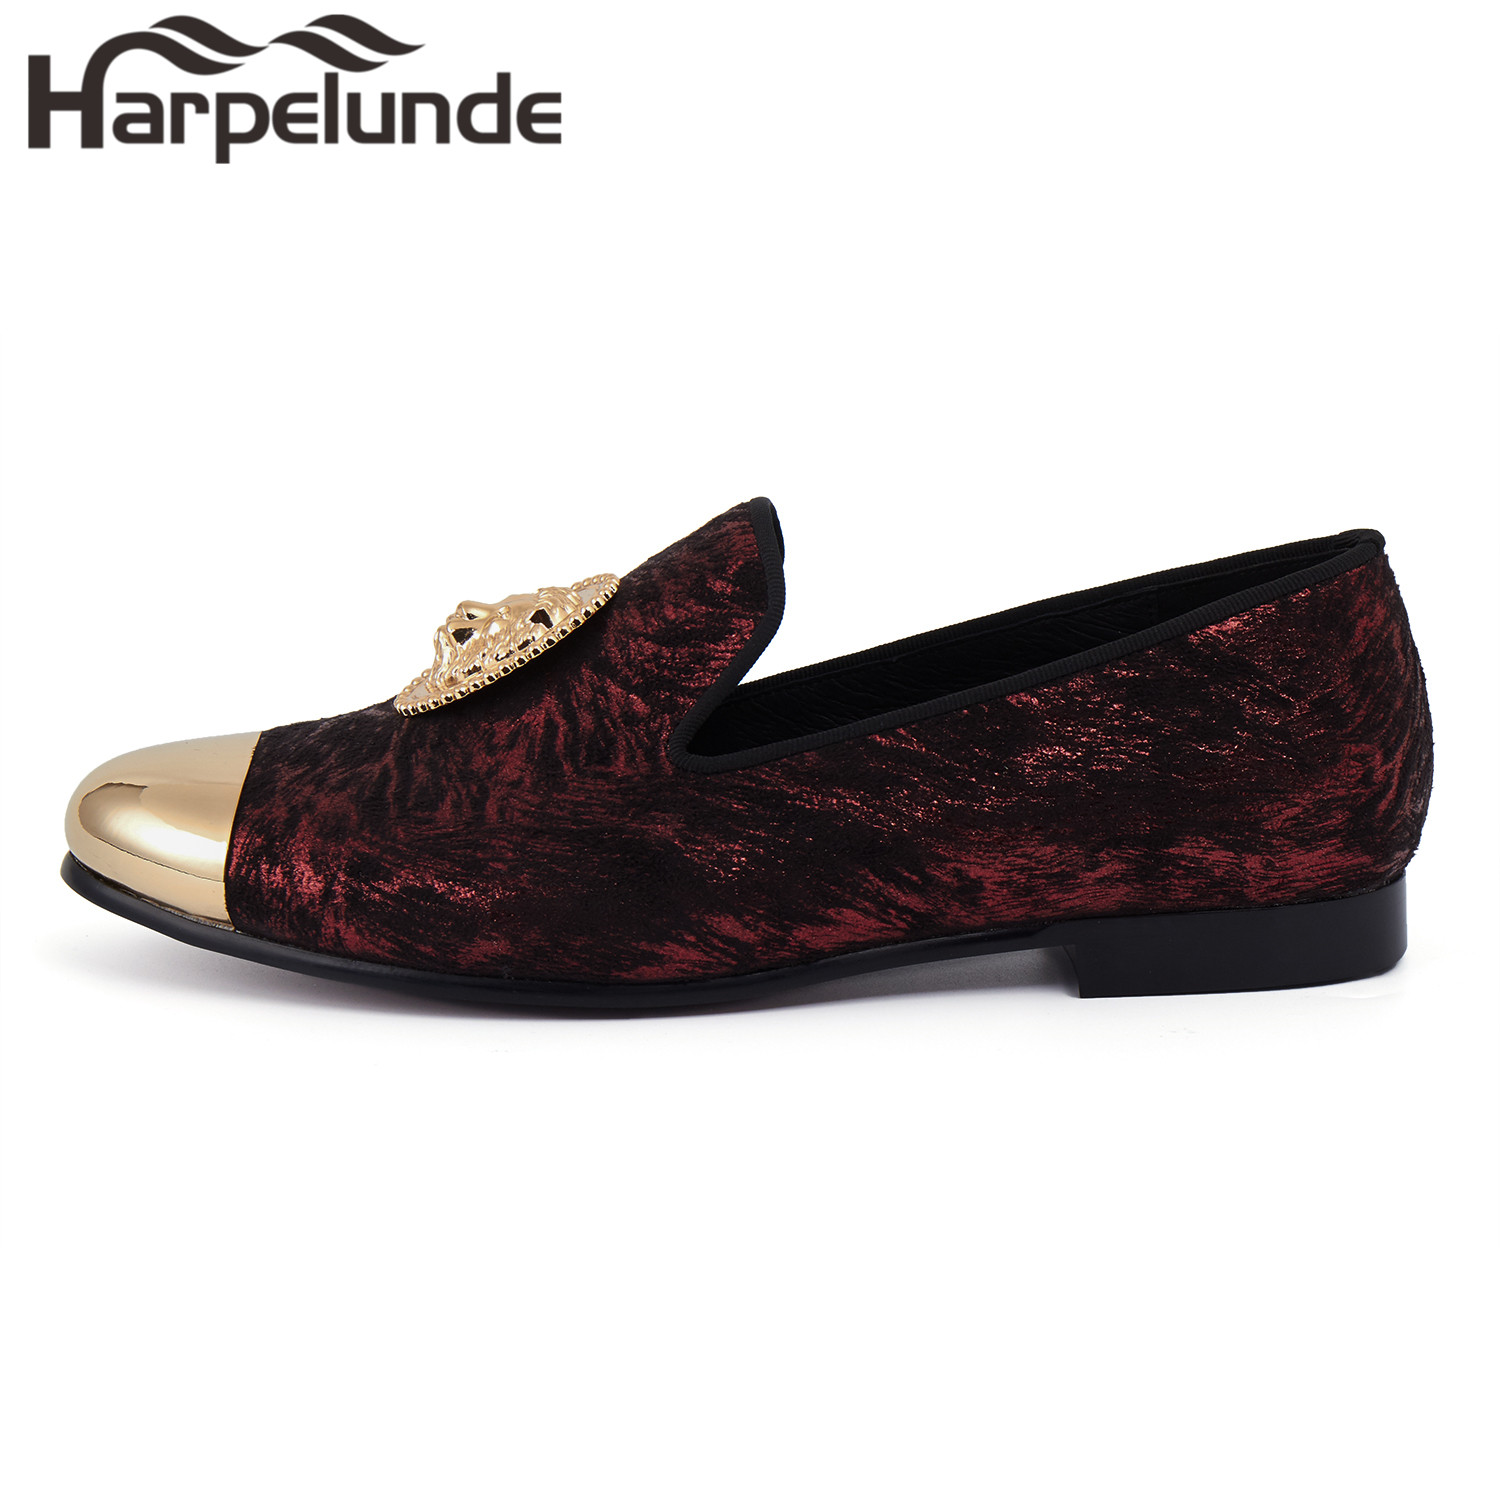 Harpelunde Animal Buckle Men Dress Loafers Printed Velvet Flat Shoes With Copper Cap Toe Size 6 To 14 in Formal Shoes from Shoes